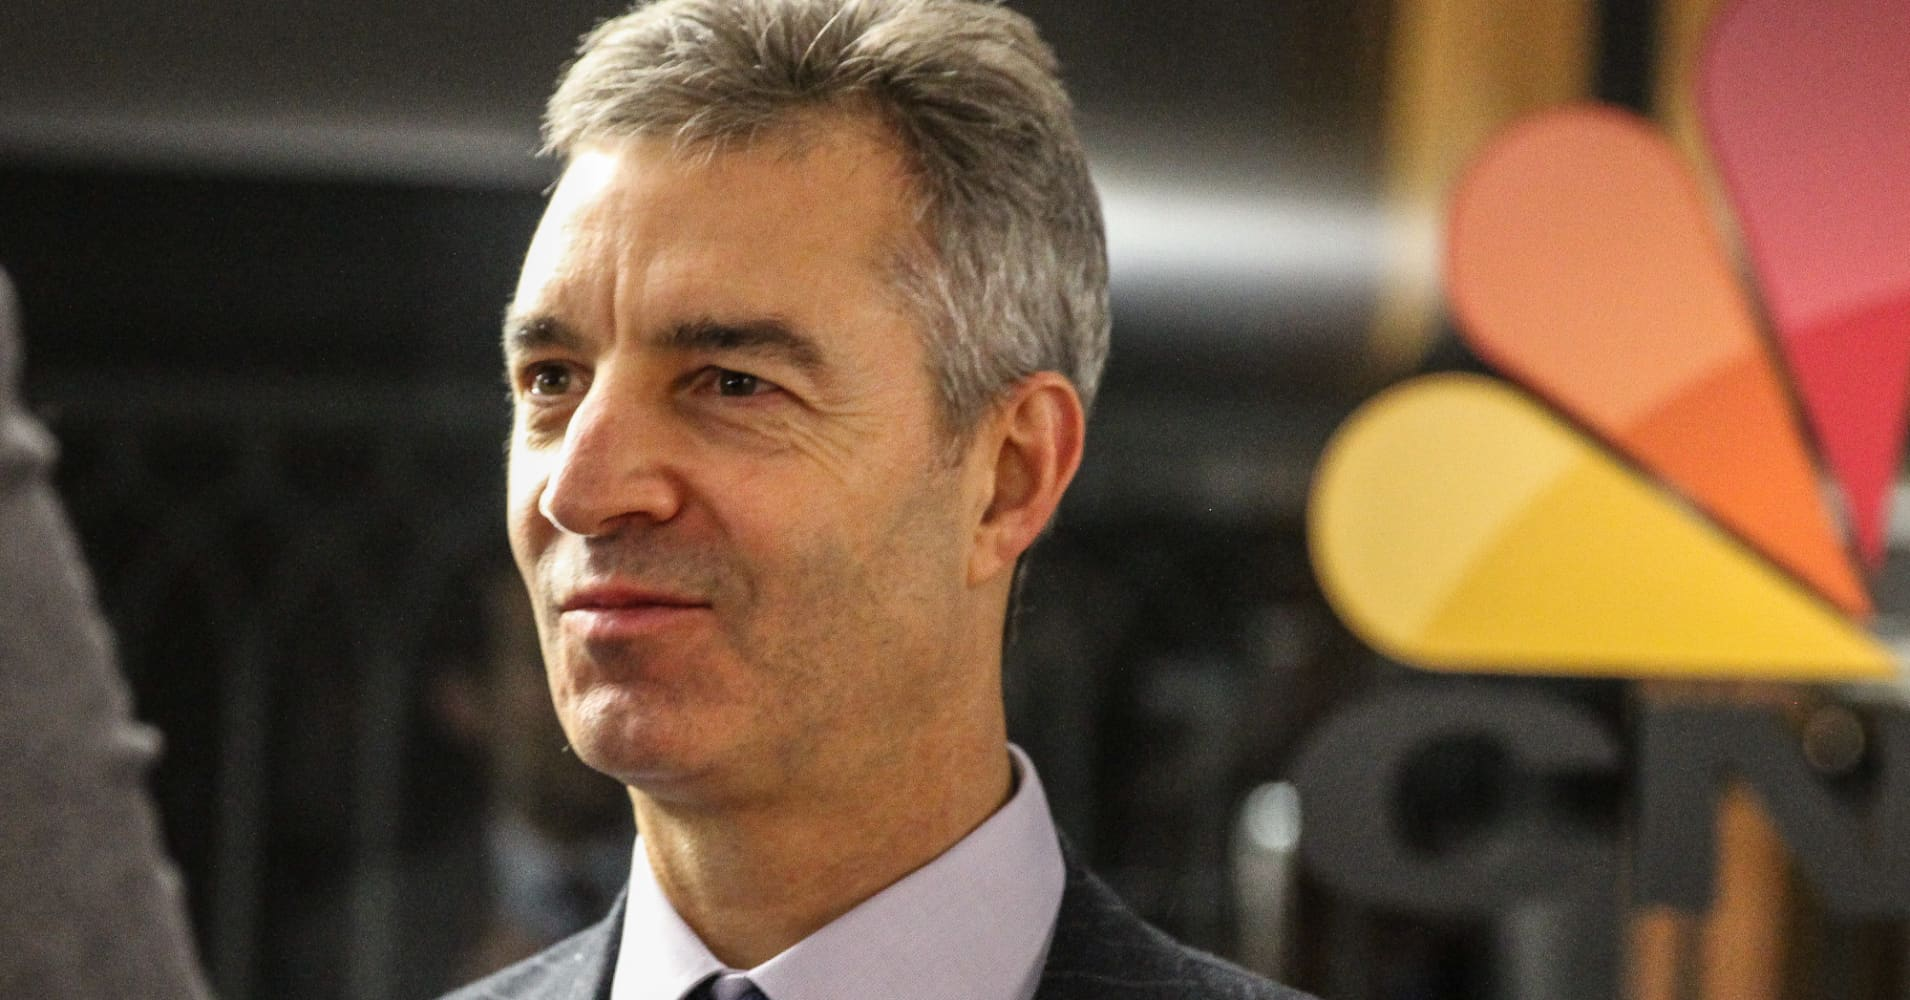 Market-beating investor Dan Loeb trumpets 'rare' opportunity in Nestle, his biggest bet yet